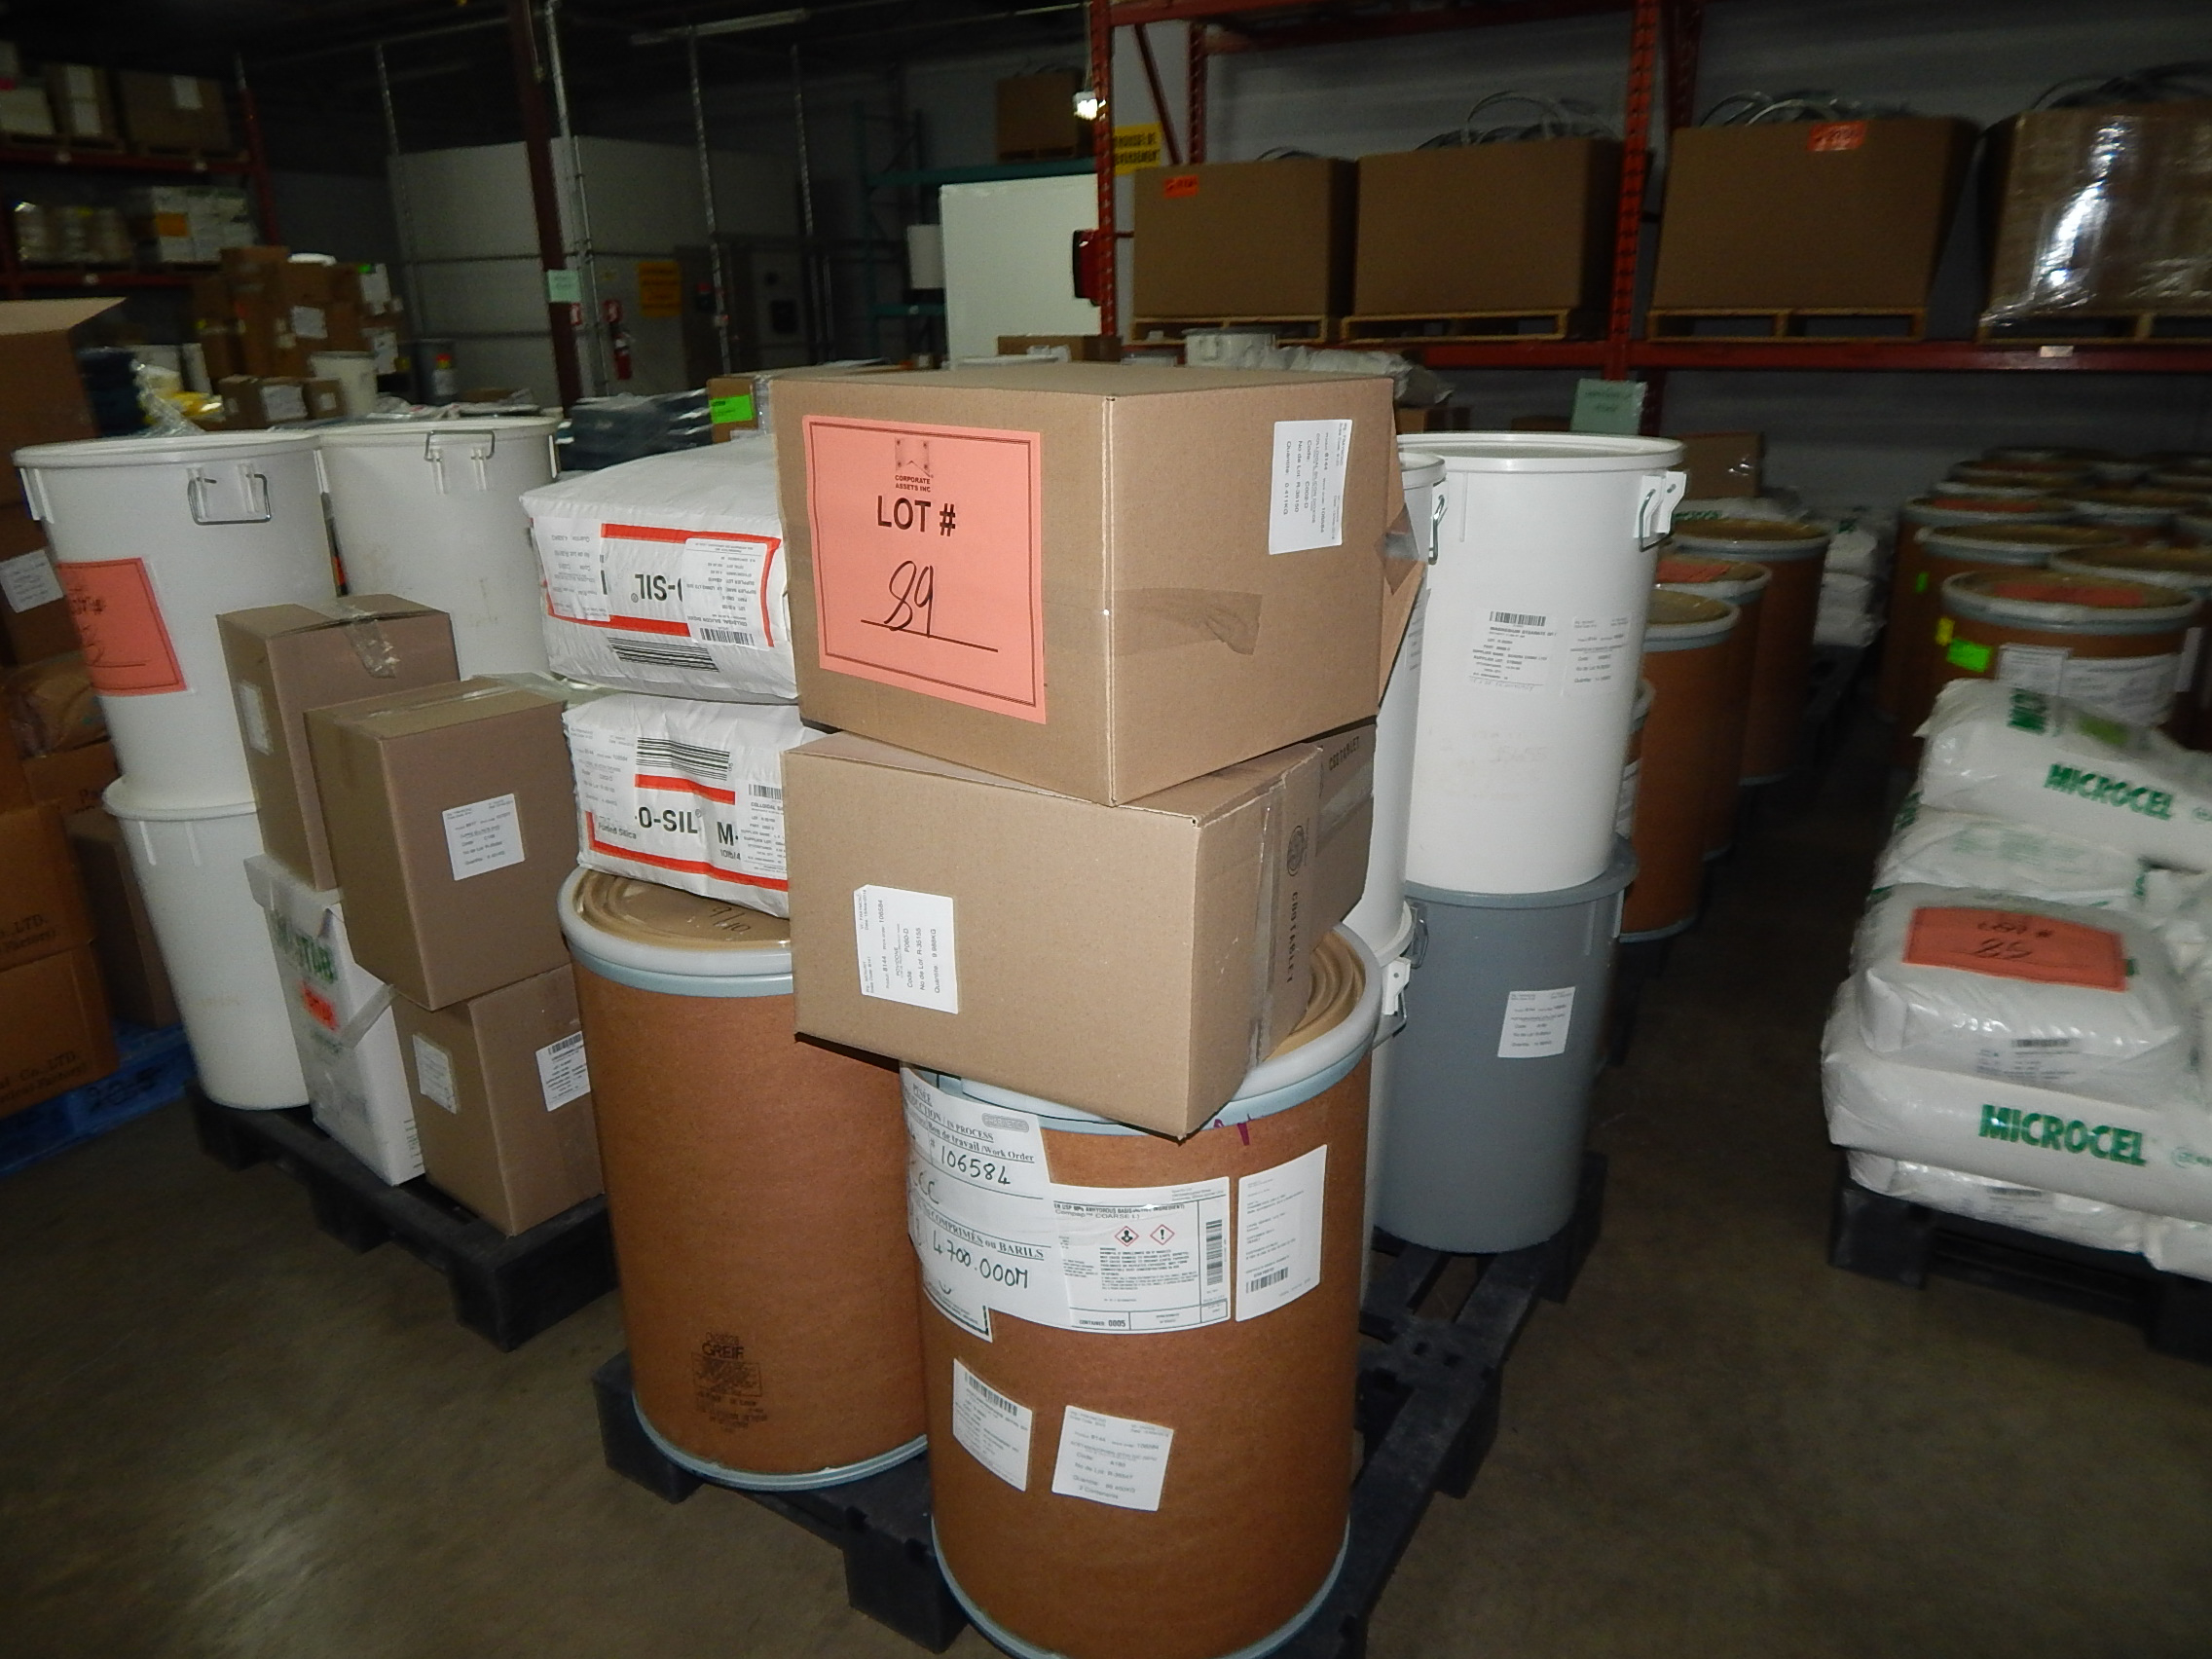 Lot 89 - LOT/ SKID WITH CONTENTS CONSISTING OF 50KG DRUMS OF ACETAMINOPHEN AND BAGS OF COLLOIDIAL SILICA